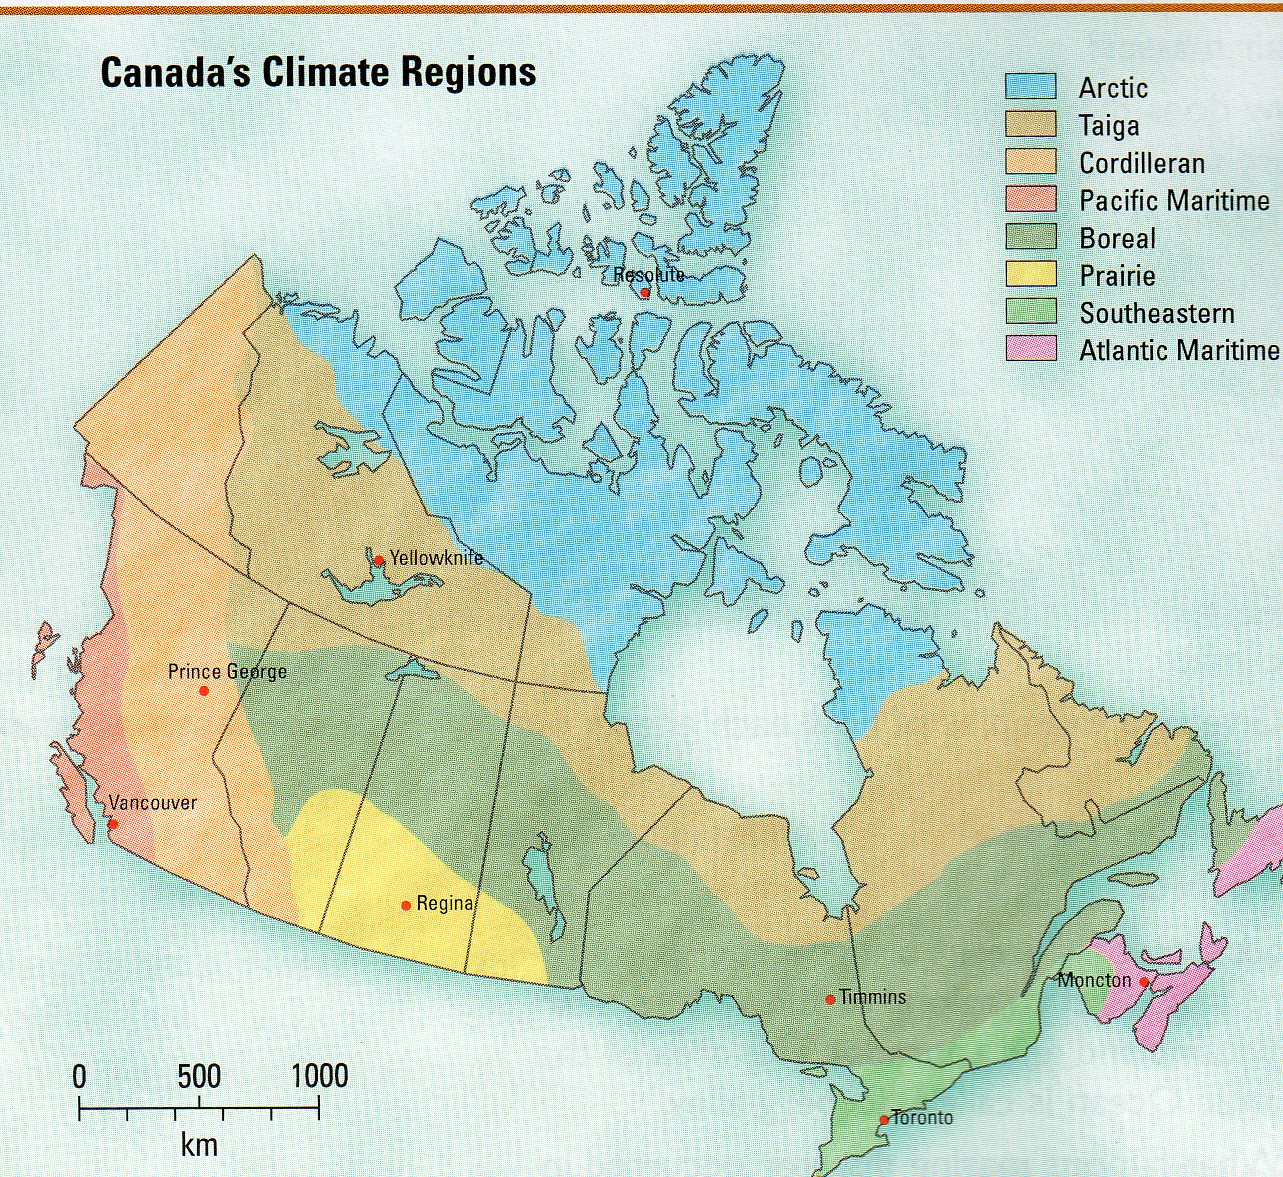 canadian geography Canadian geographic is a magazine published by the royal canadian geographical society (rcgs) based in ottawa, ontario, canada.